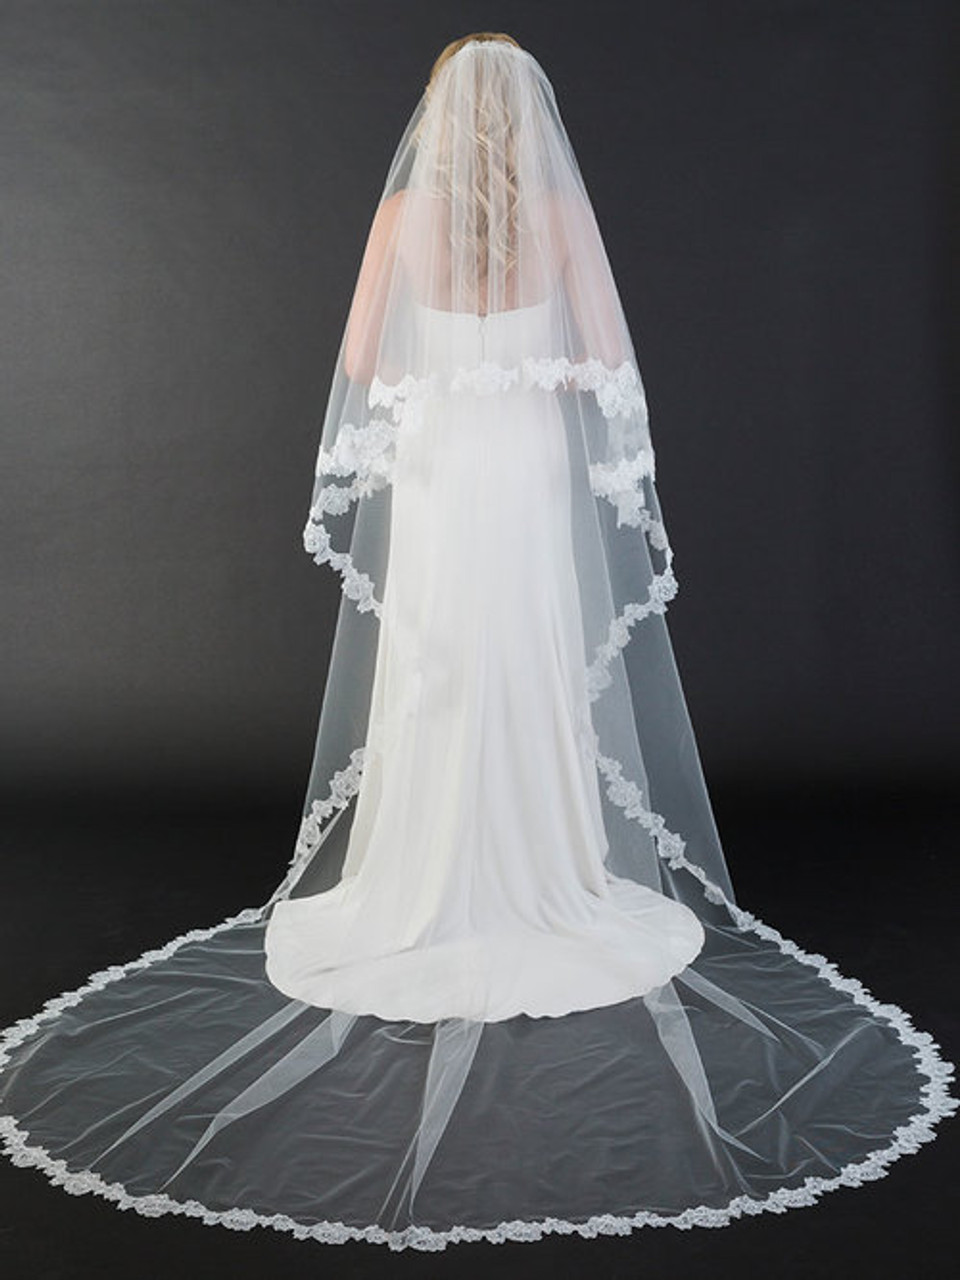 "Bel Aire Bridal Veils V7441C - 108"" Inches - Foldover cathedral veil with soft Chantilly lace"